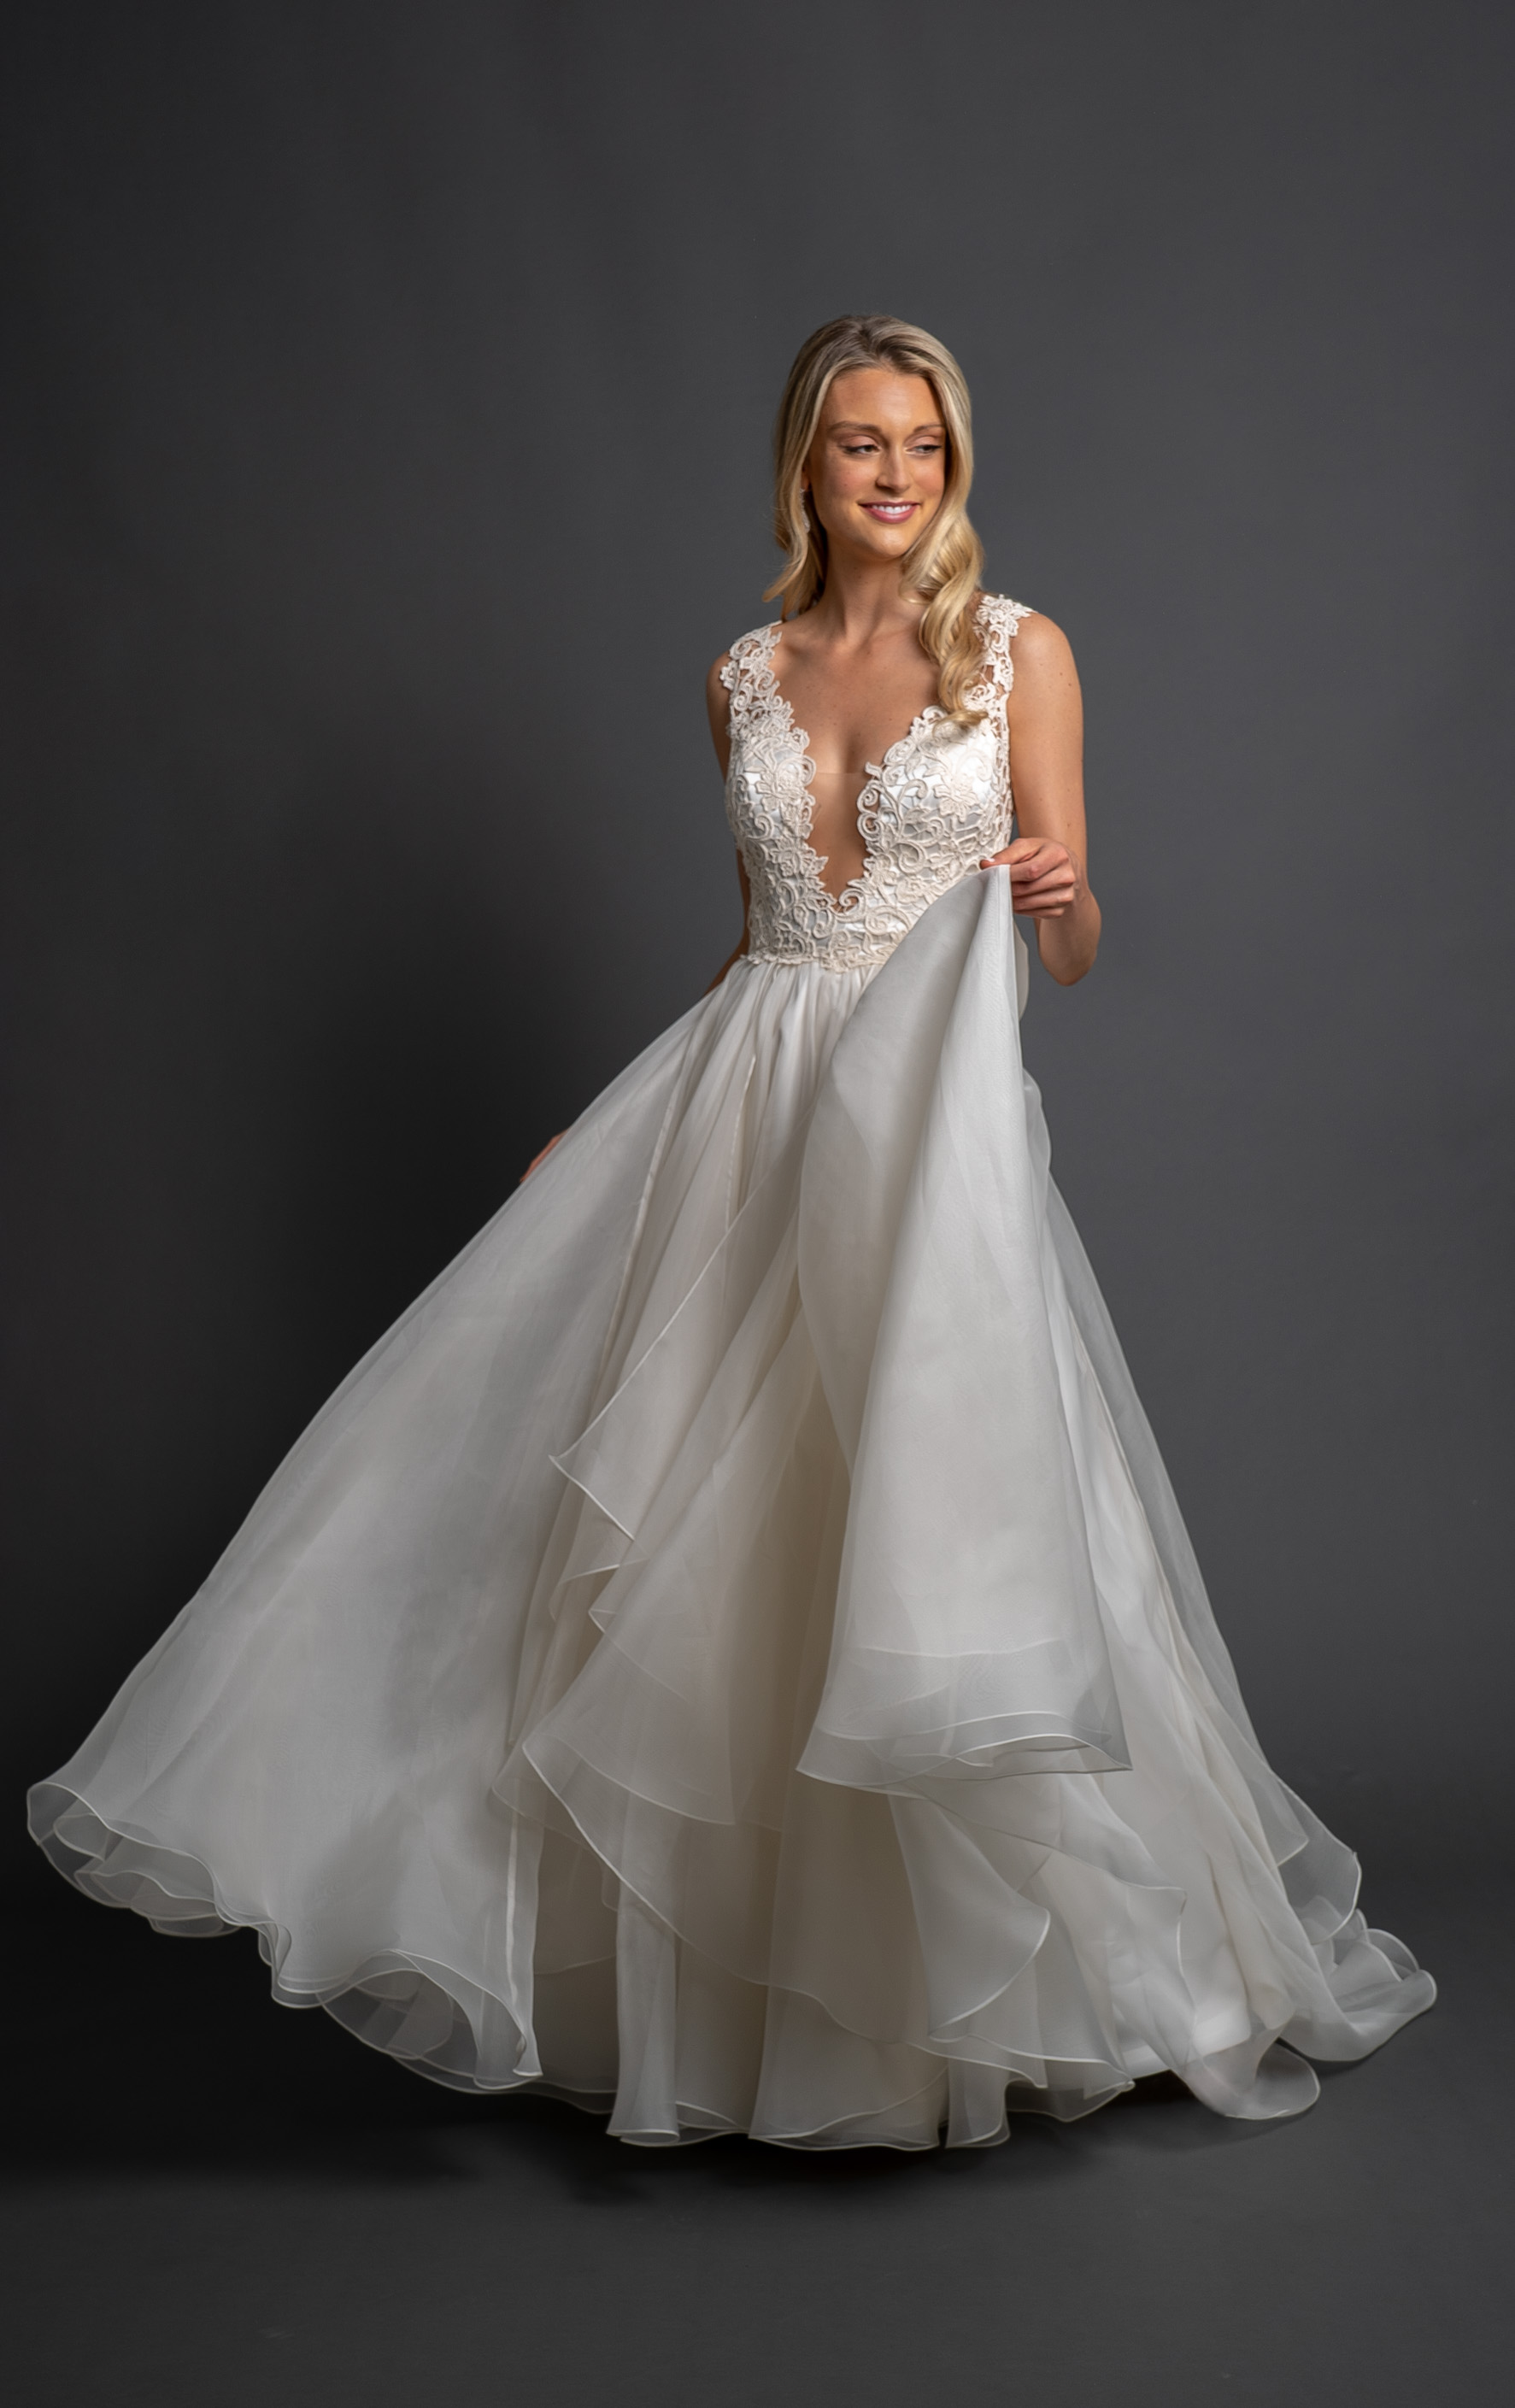 Sleeveless Wedding Dress with Fitted Deep V Bodice and A-line Skirt by Modern Trousseau. Made in the USA by Modern Trousseau.